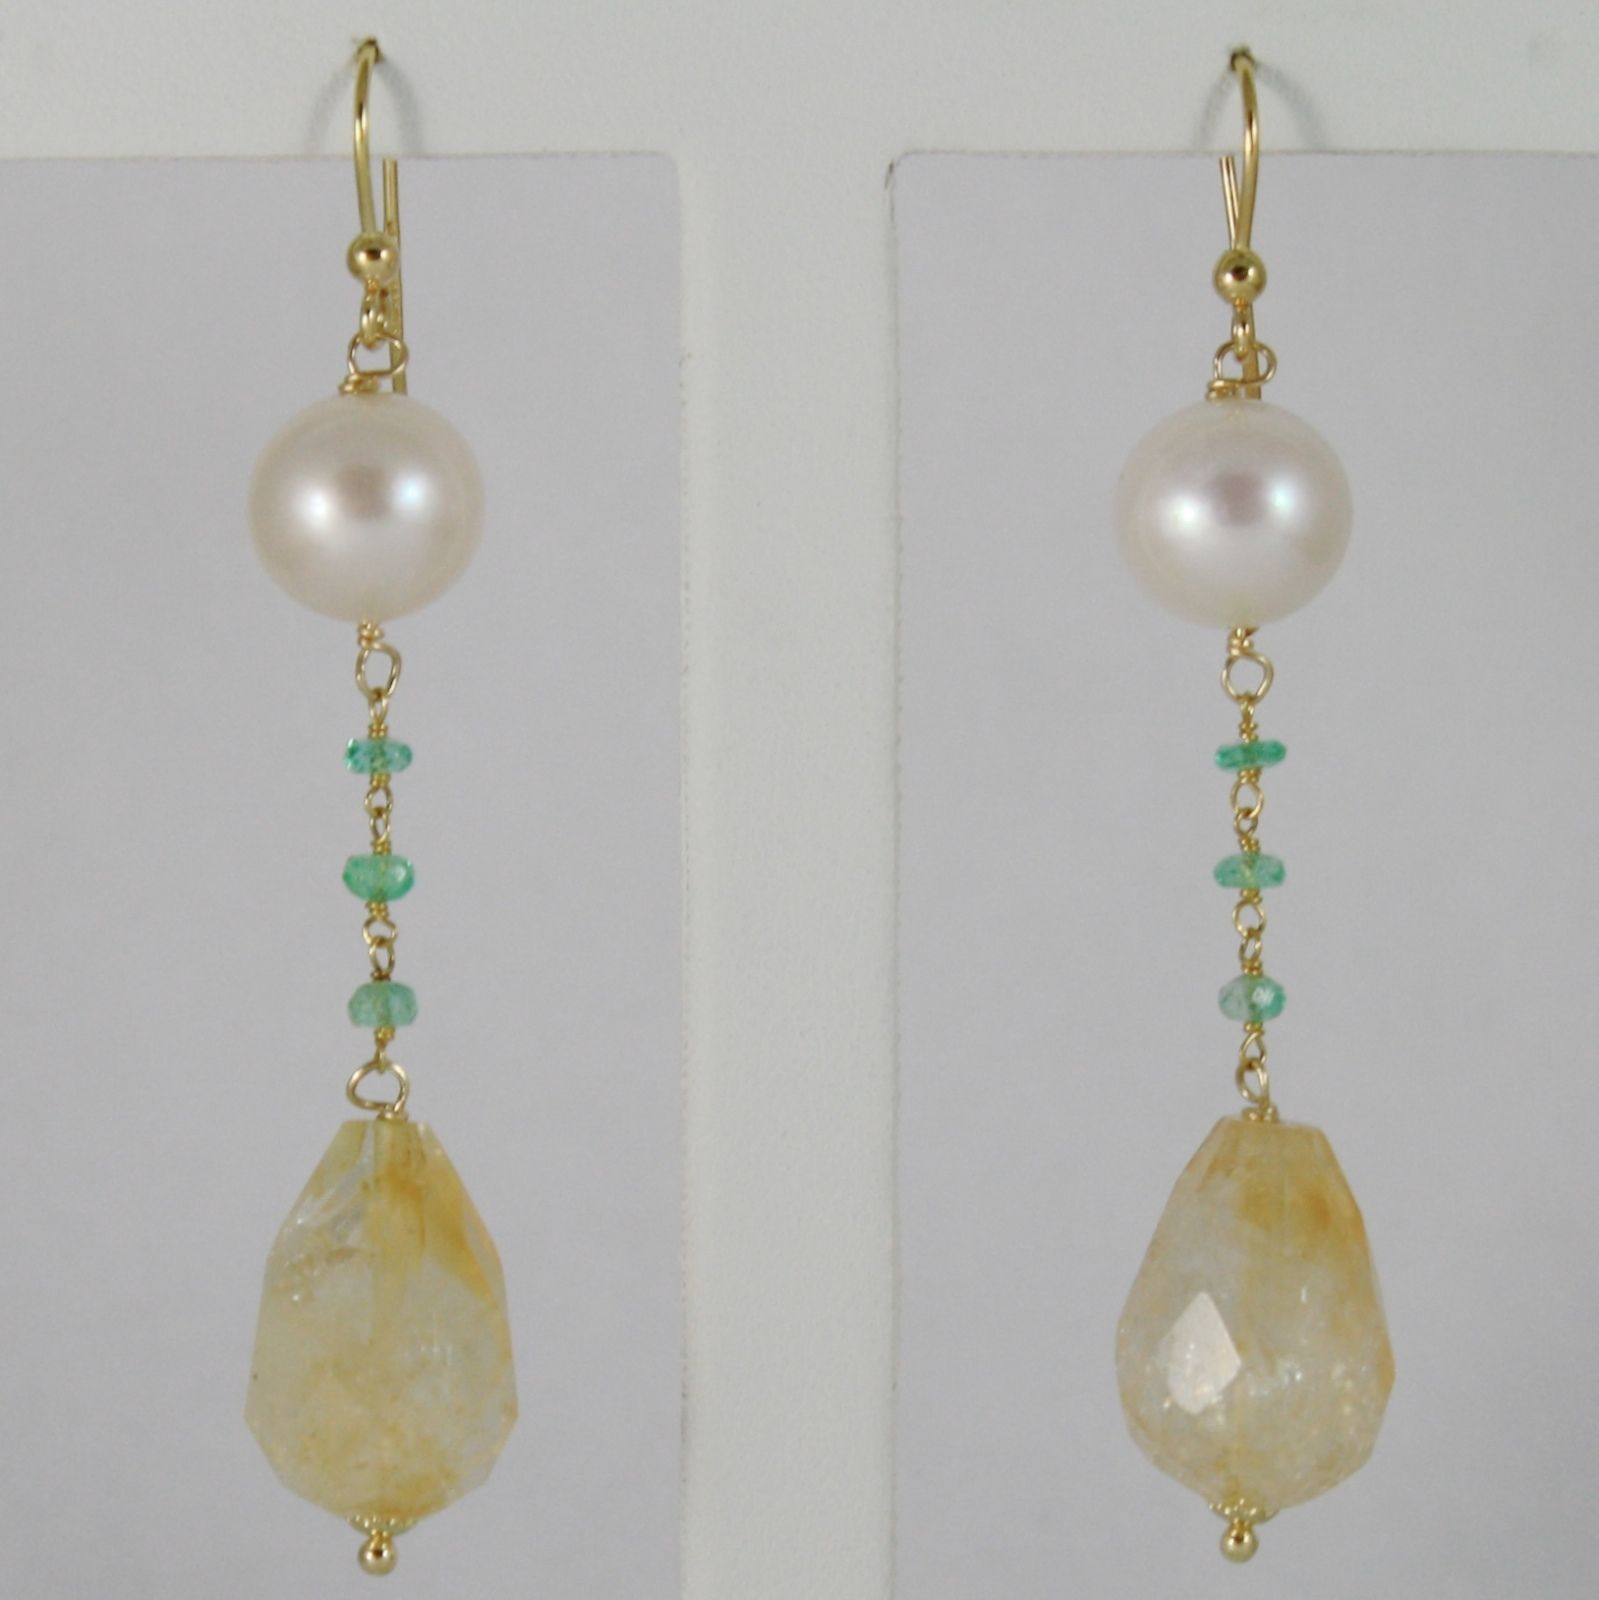 18K YELLOW GOLD PENDANT EARRINGS, CITRINE, EMERALD AND PEARLS, MADE IN ITALY